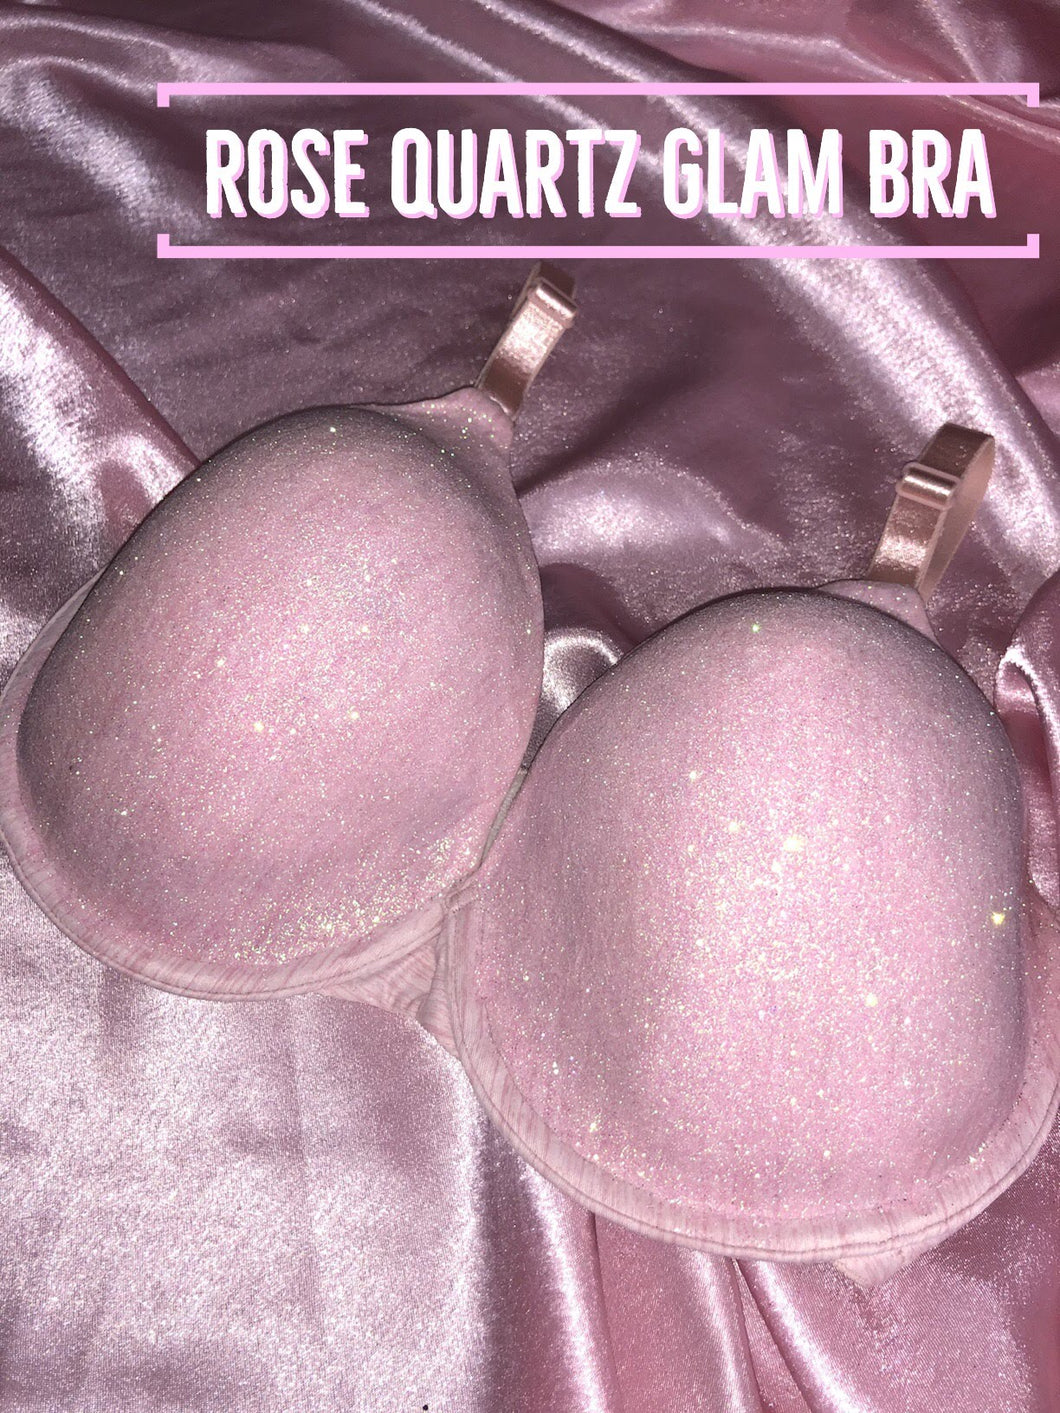 Rose Quartz Glam Bra